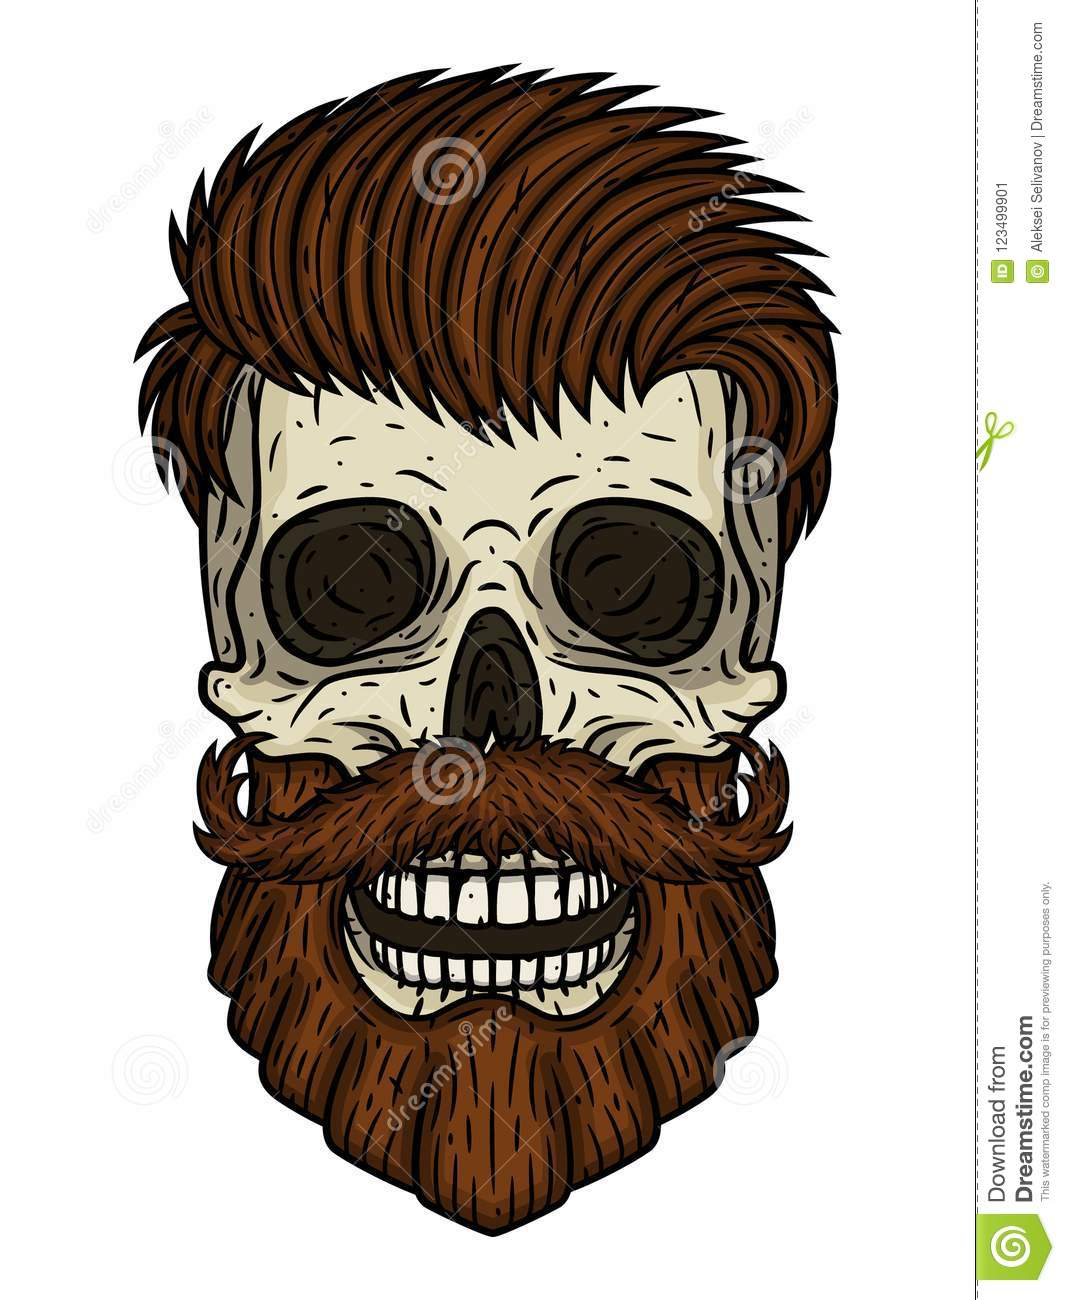 Skull Bearded Vector Illustration Of Human With Beard And Mustache